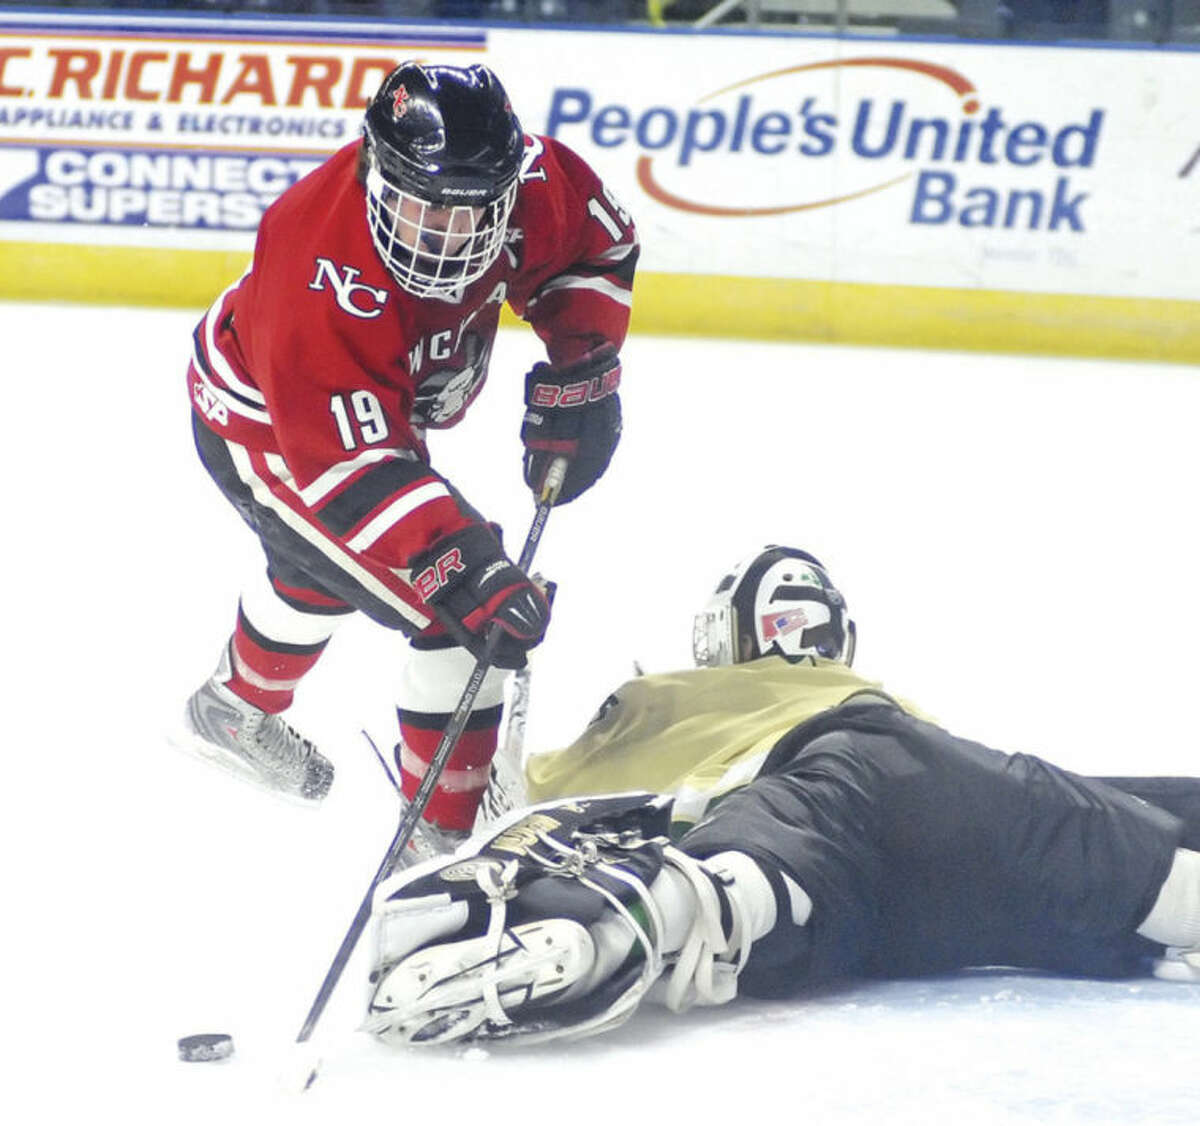 Hour photo/John Nash New Canaan's Henry Stanton, left, is stoned by Notre Dame-West Haven goaltender Wade Conlan, who made a desperation kick save during a second-period breakaway in Saturday's CIAC Division I quarterfinals at the Webster Bank Arena.